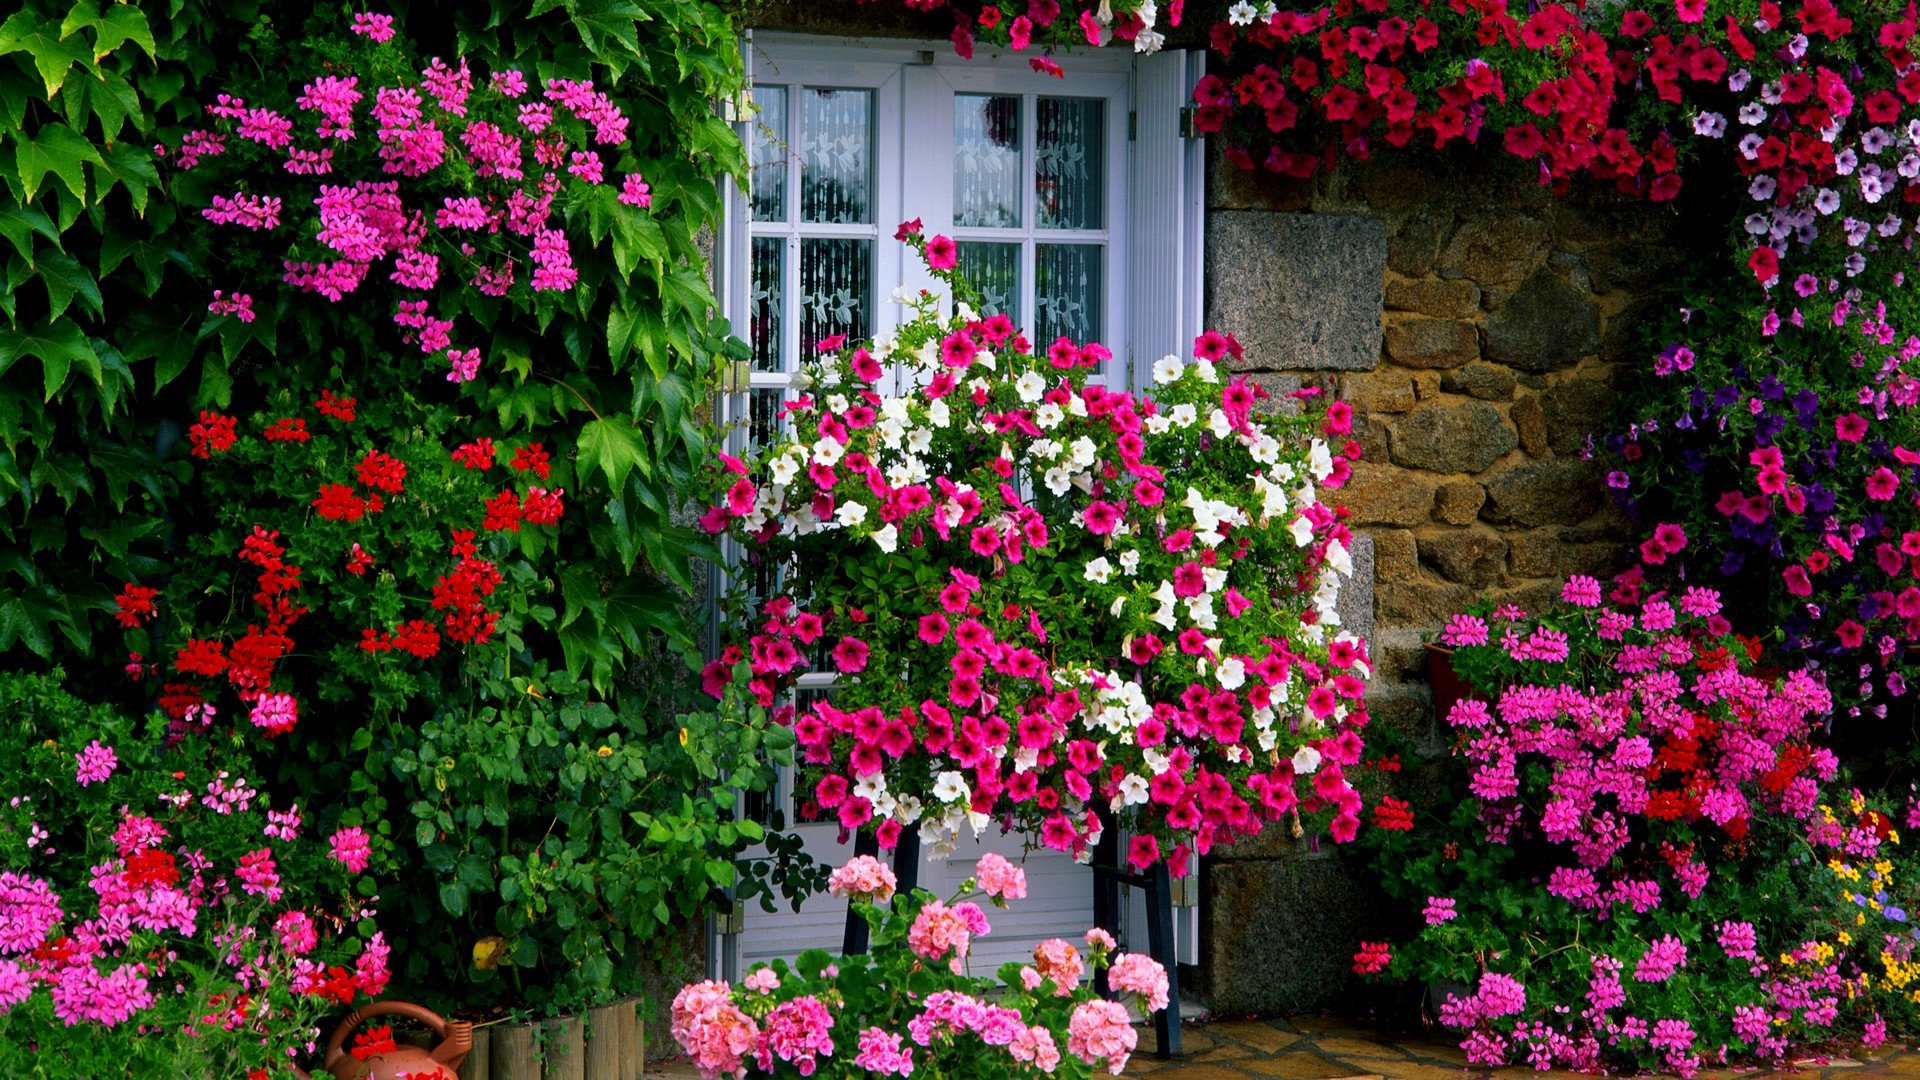 10 Best Low-Maintenance Flowers for Effortless Garden Ideas Colorful Planters For Backyard on backyard urn ideas, backyard patio ideas, cheap retaining wall ideas, backyard rose ideas, diy flower garden design ideas, backyard fence ideas, backyard gift ideas, tropical landscape patio design ideas, backyard outdoor ideas, backyard wood ideas, backyard landscaping ideas, back yard landscaping design ideas, backyard shelf ideas, small backyard ideas, outdoor flower pot decorating ideas, backyard plant ideas, backyard statue ideas, backyard bed ideas, backyard light ideas, backyard flowers ideas,